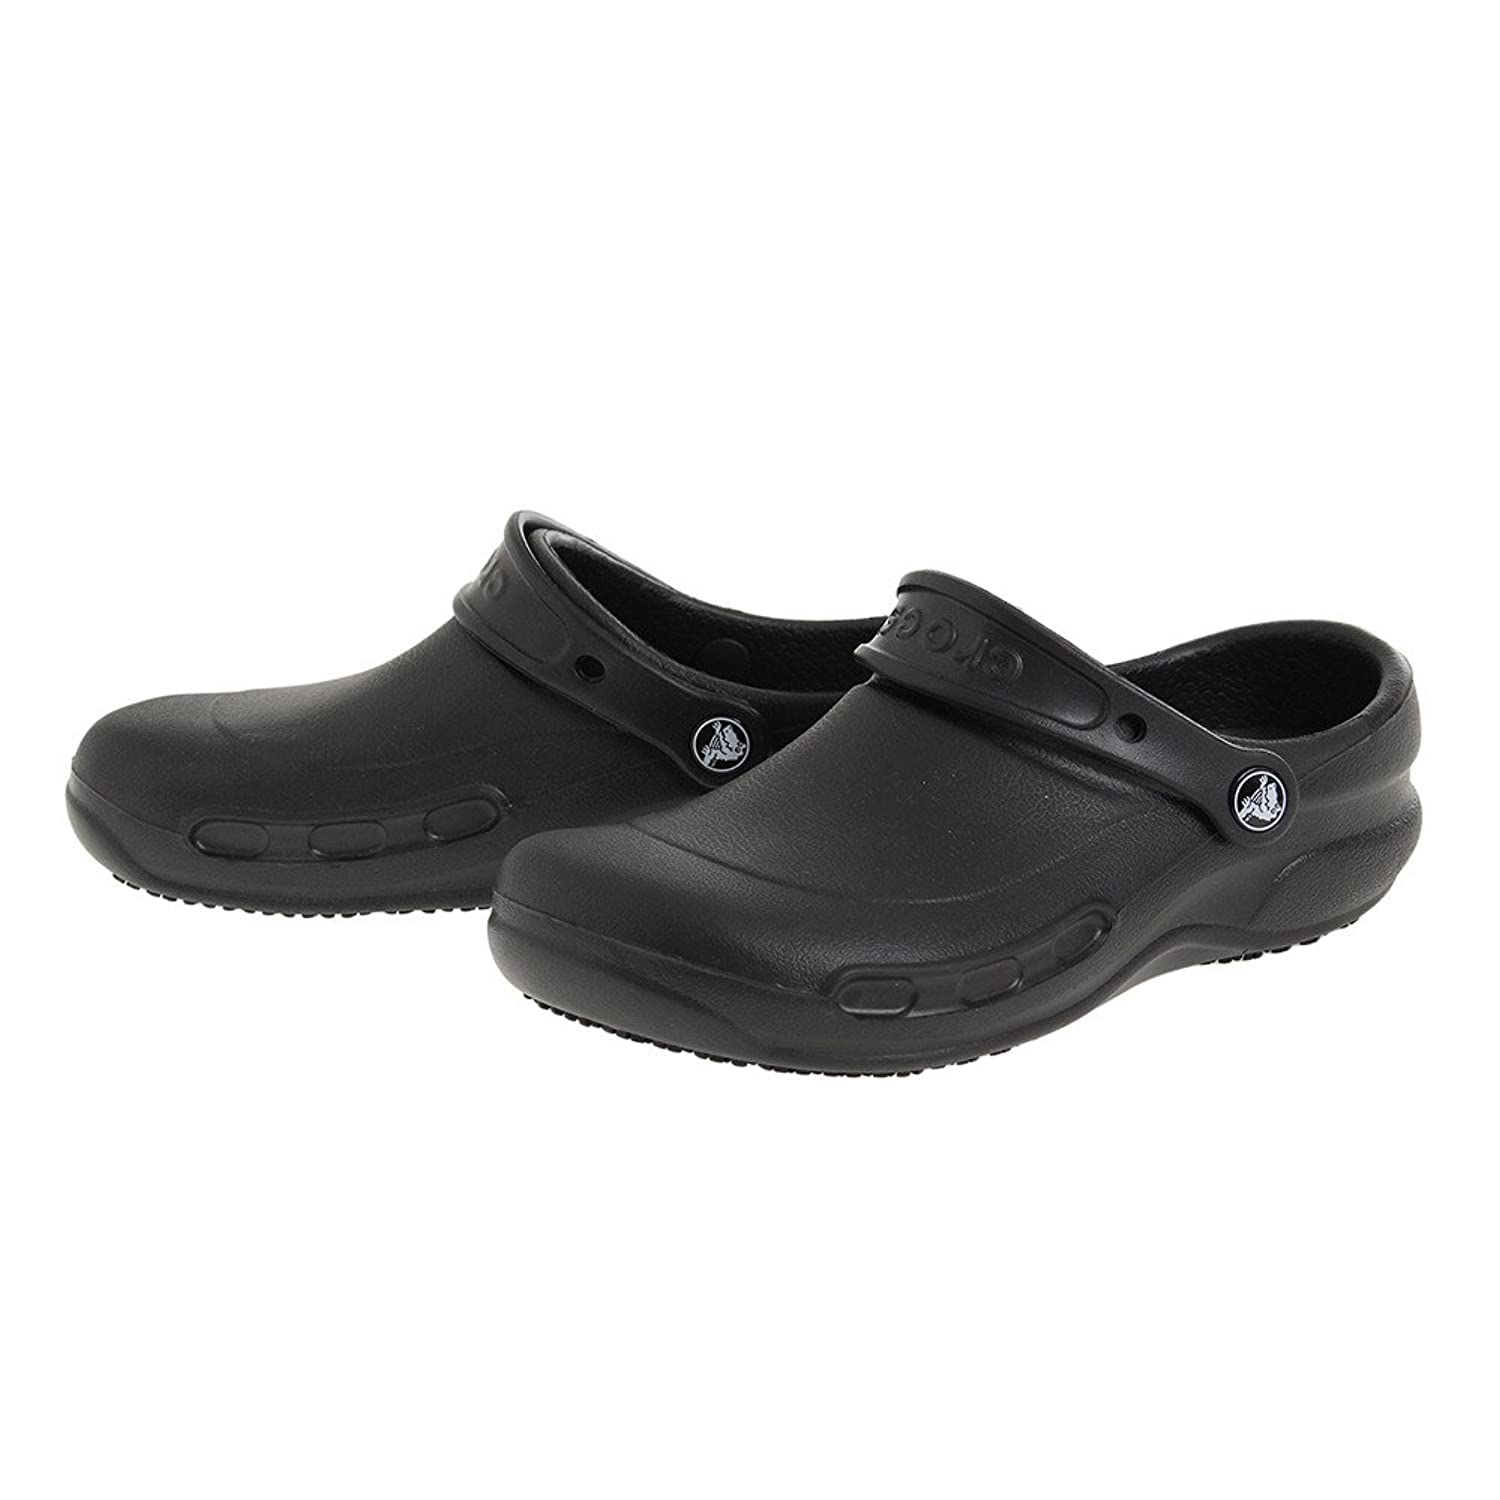 Bistro / Work Shoe for Adults Size: 11 D(M) US Mens Color: Black